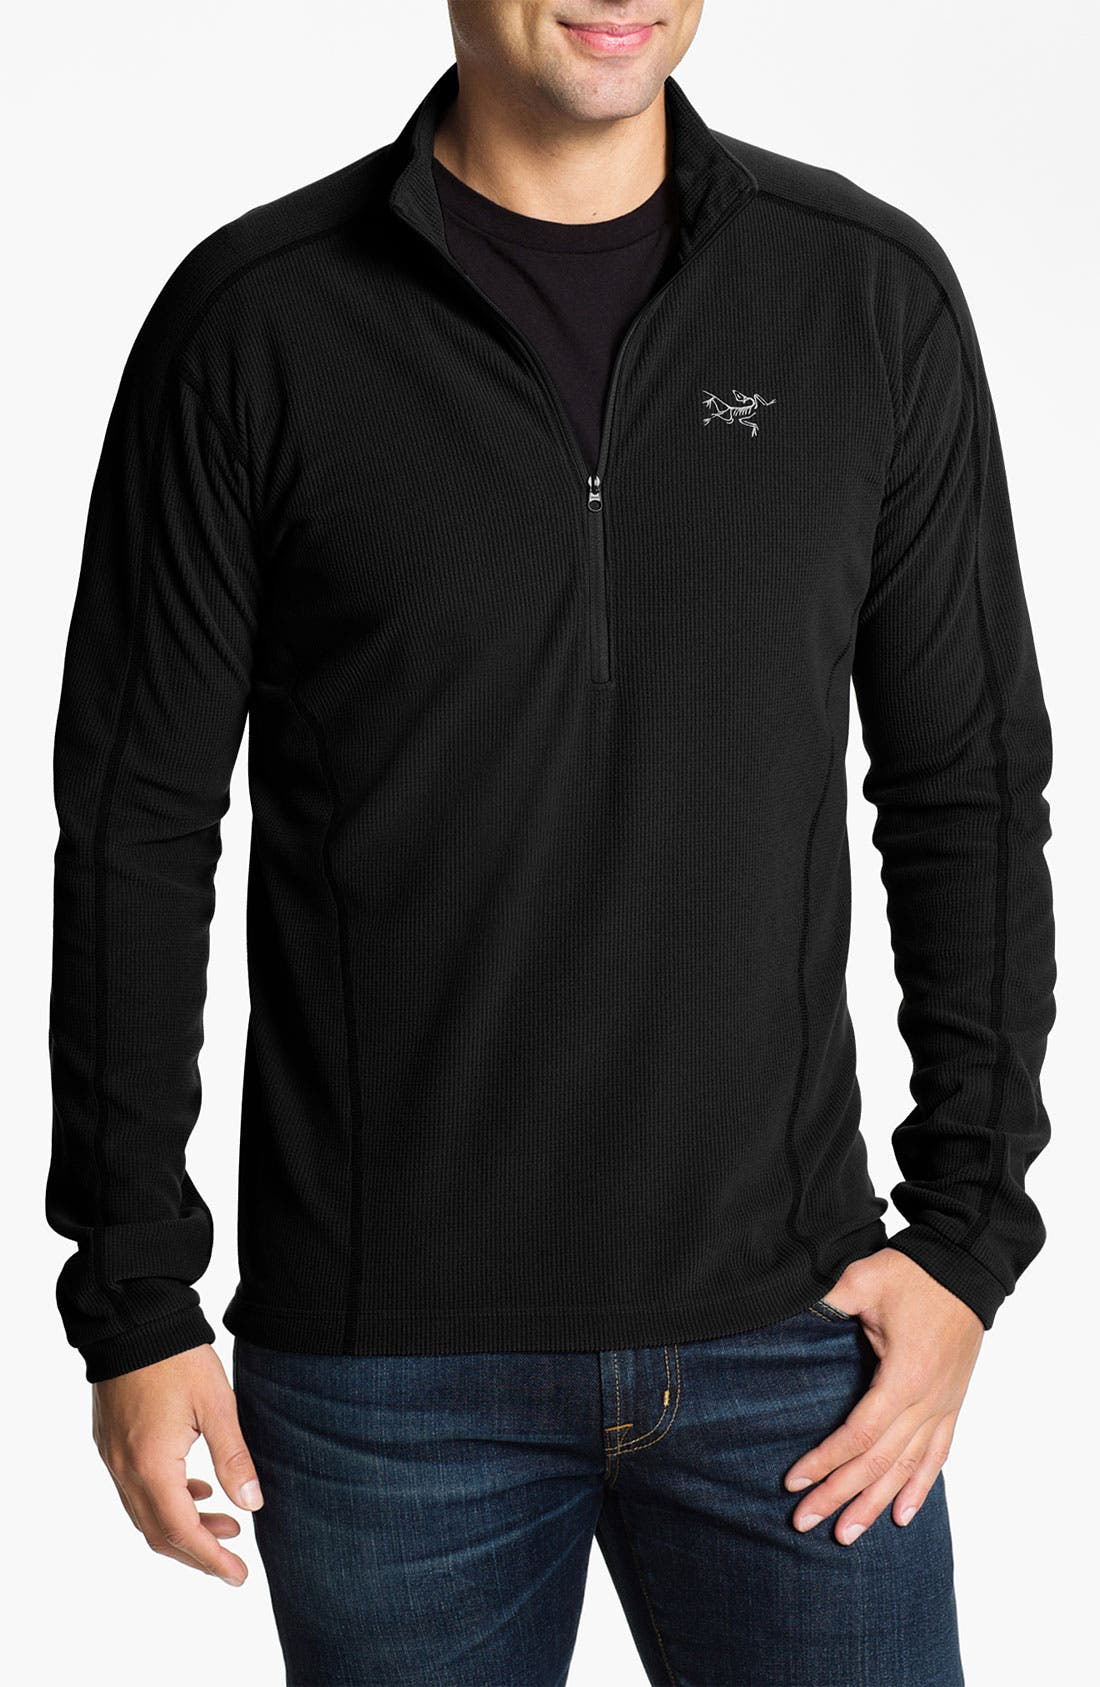 Alternate Image 1 Selected - Arc'teryx 'Delta LT' Half Zip Sweatshirt